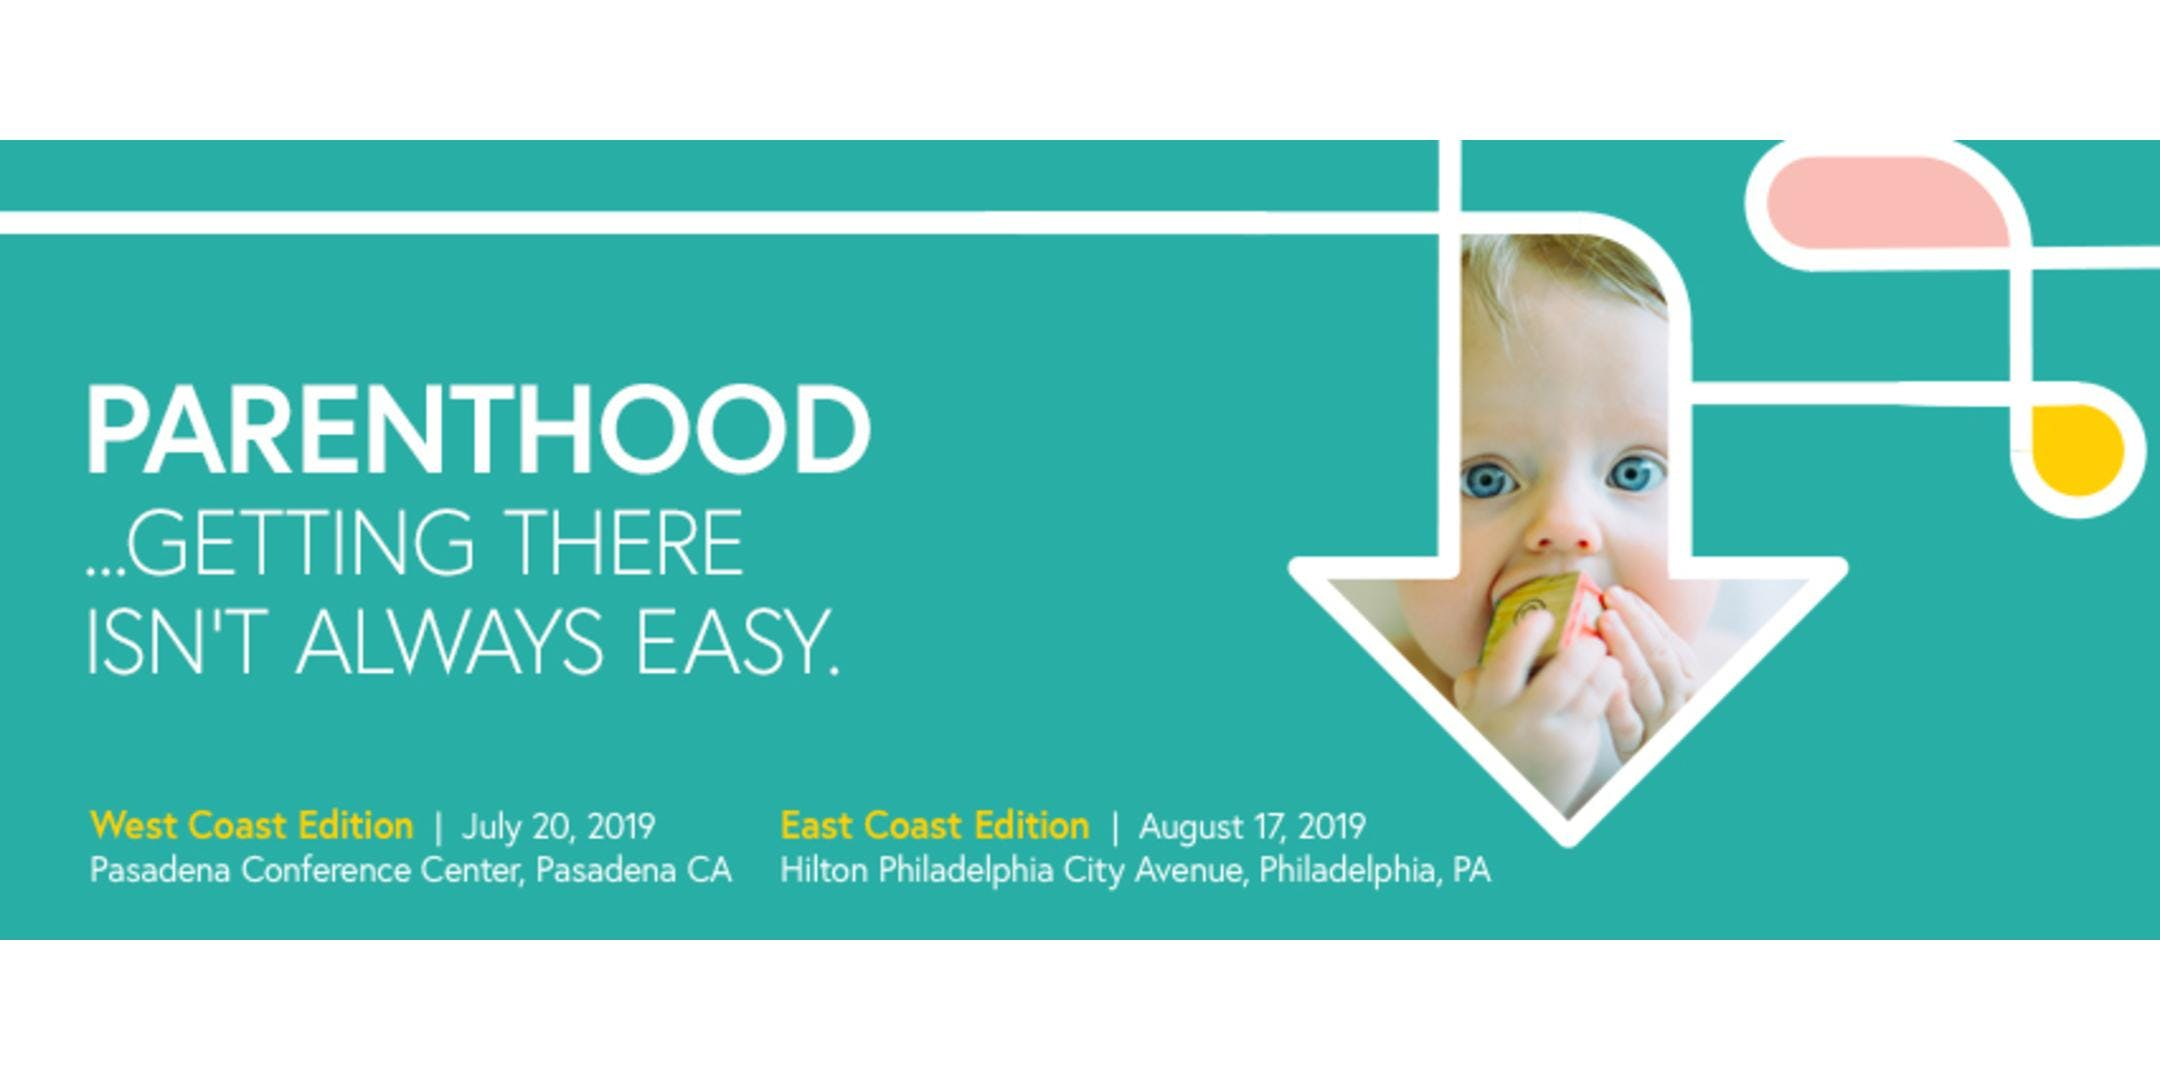 American Fertility Expo & Conference 2019 - West Coast